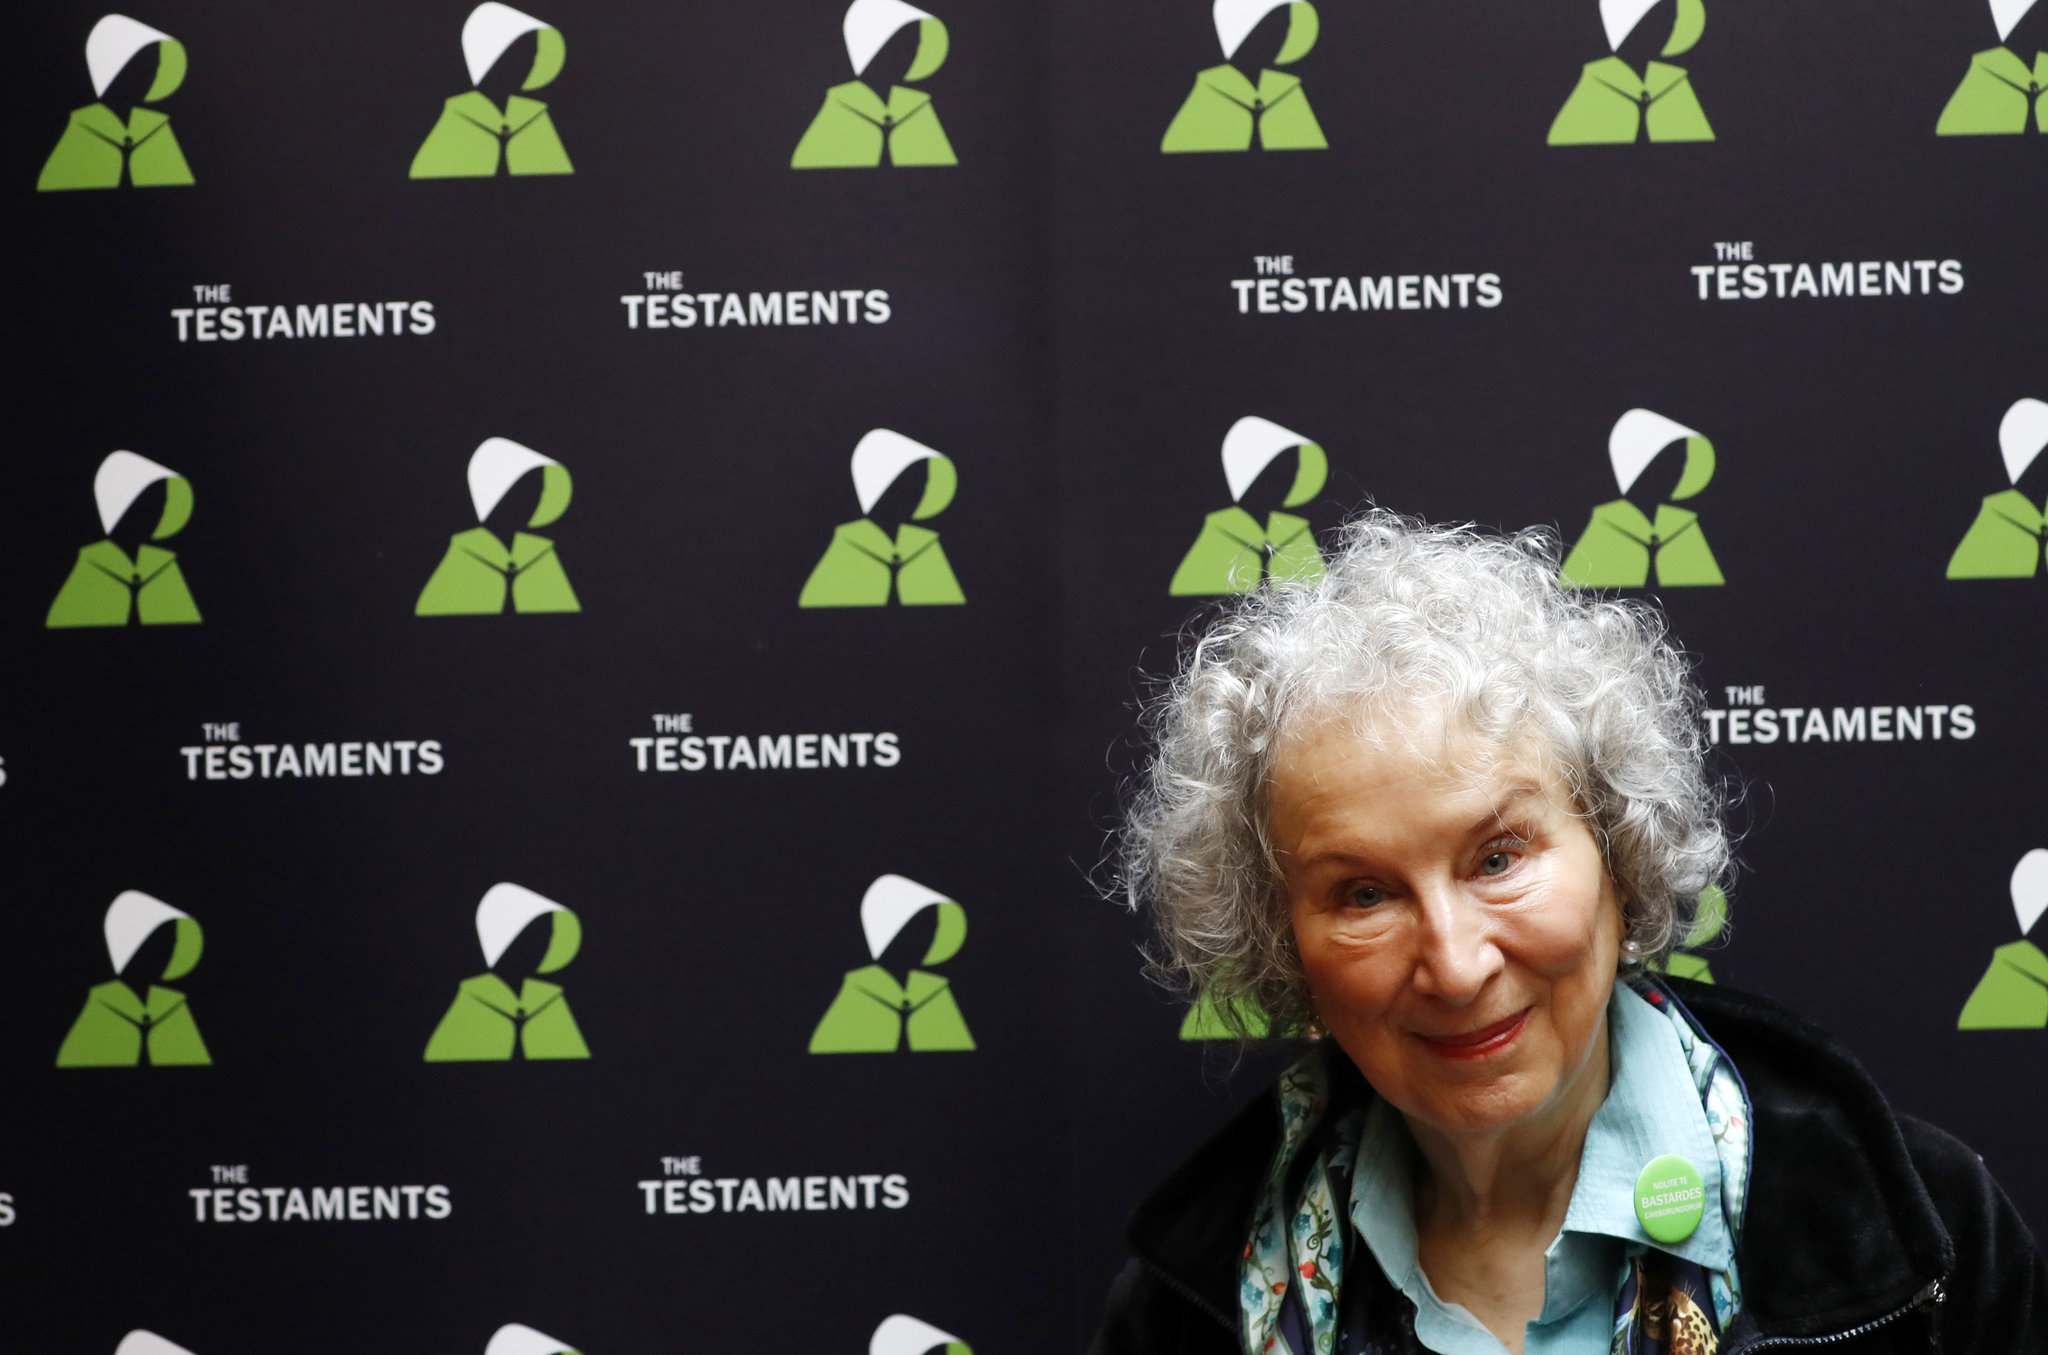 Alastair Grant / The Associated Press files</p><p>Margaret Atwood will host a local launch for her new book The Testaments on Sept. 30 at RMTC.</p>